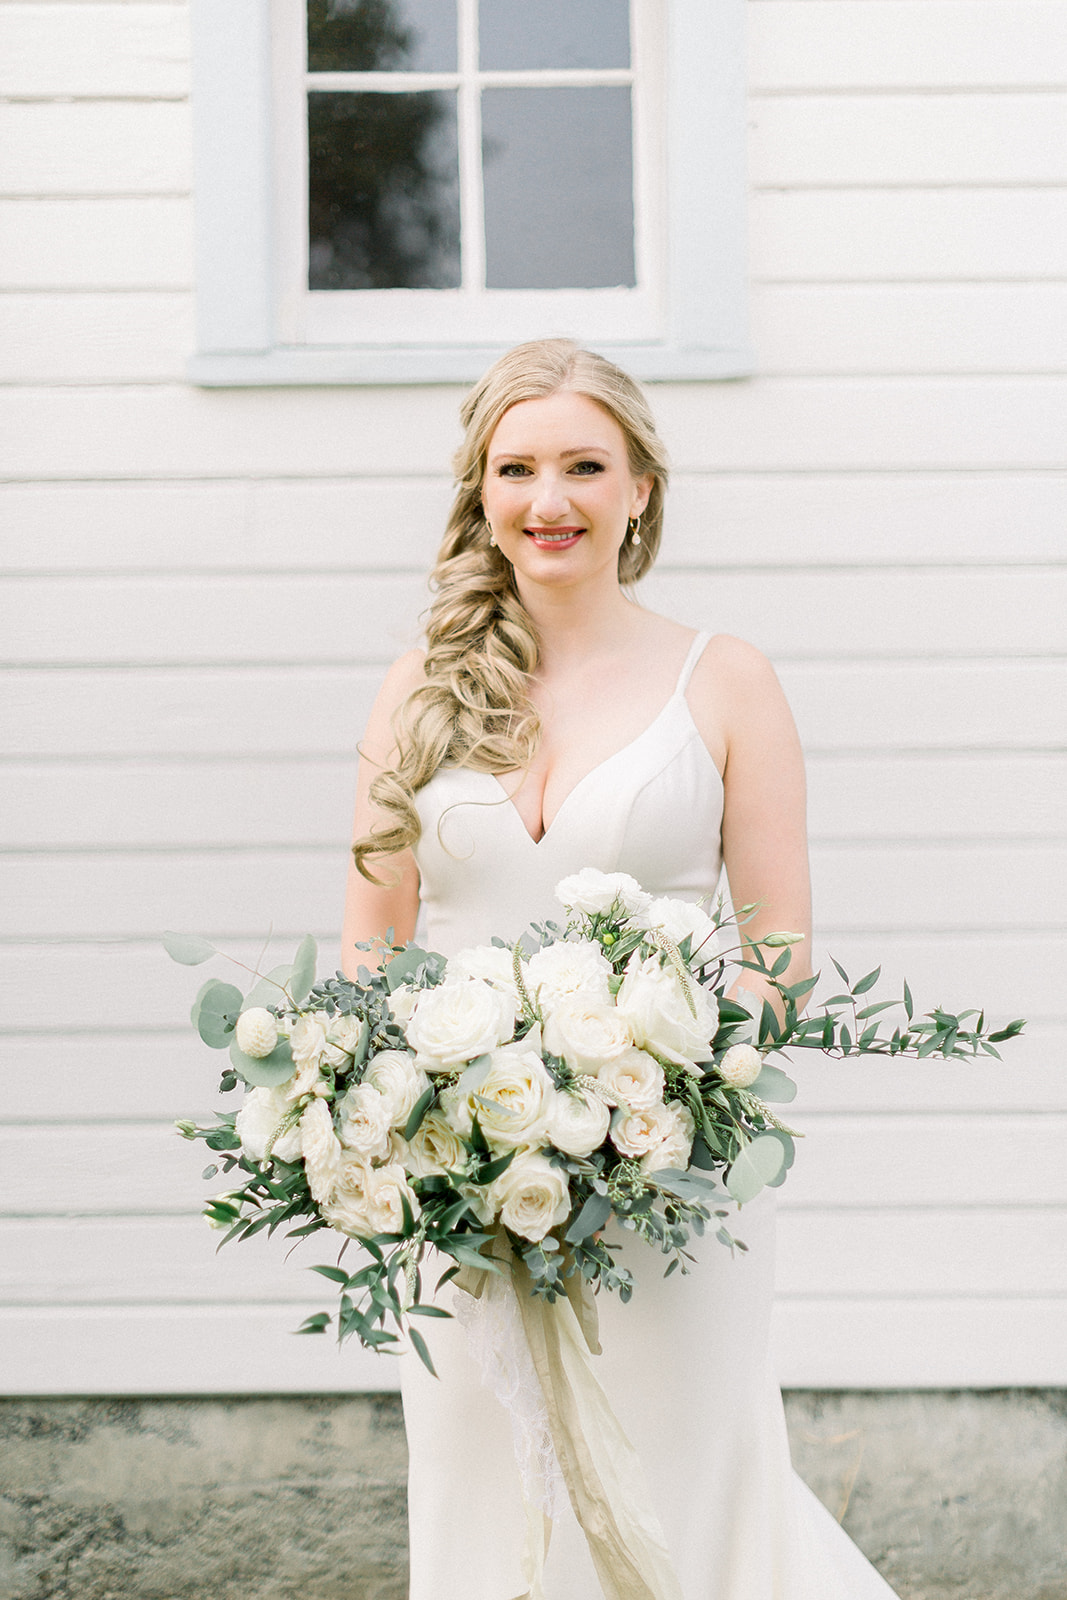 White & Greenery Bouquet